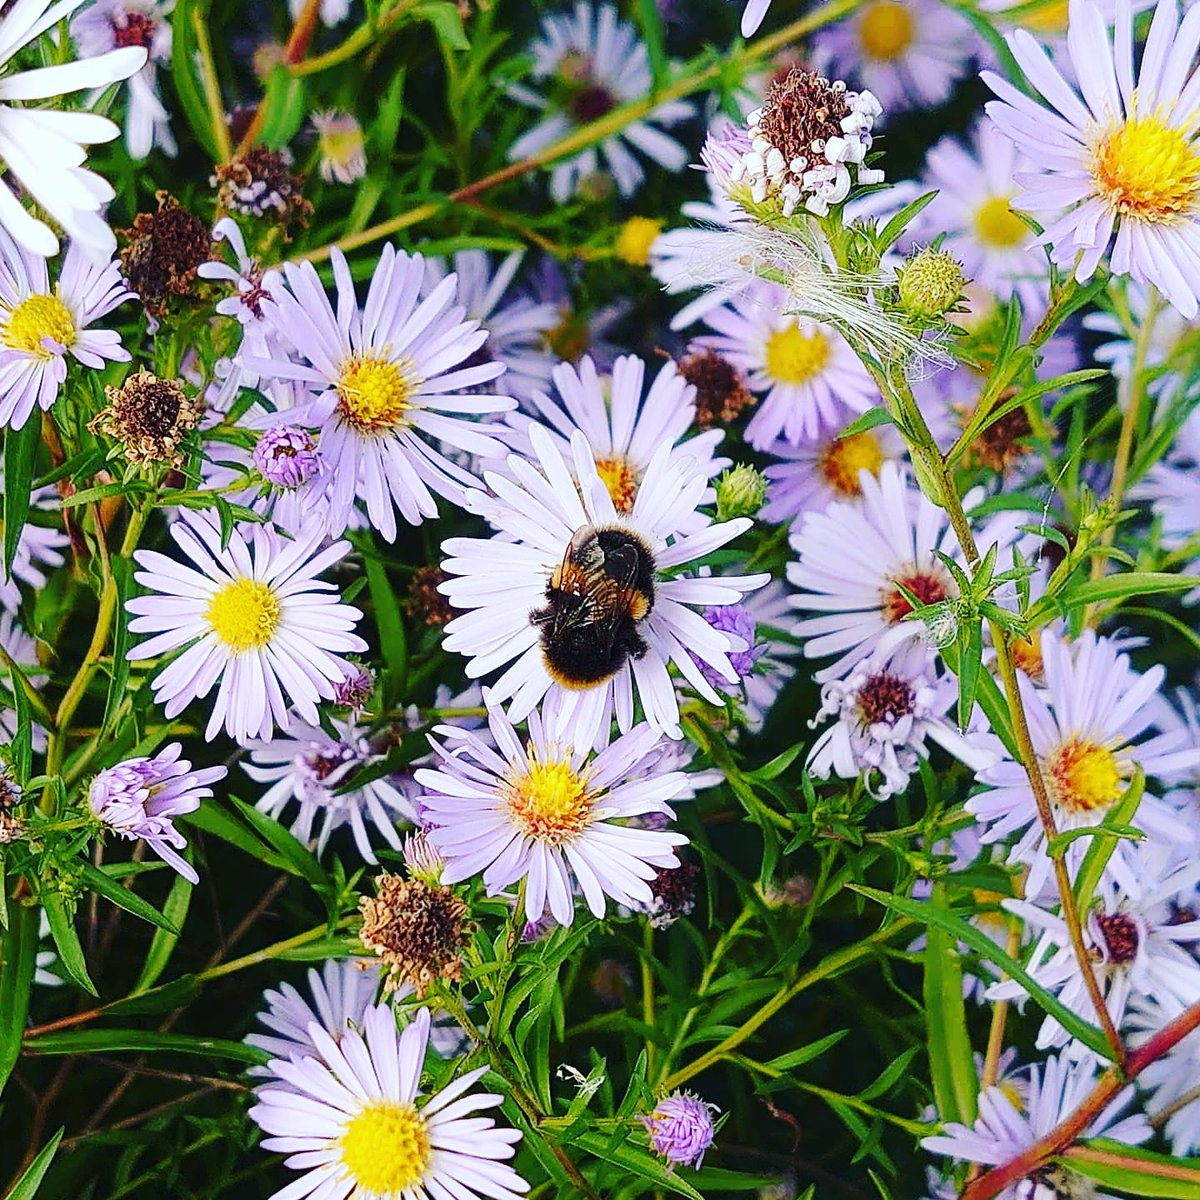 Bee happy #bees #summer #photographylovers #photography #nature